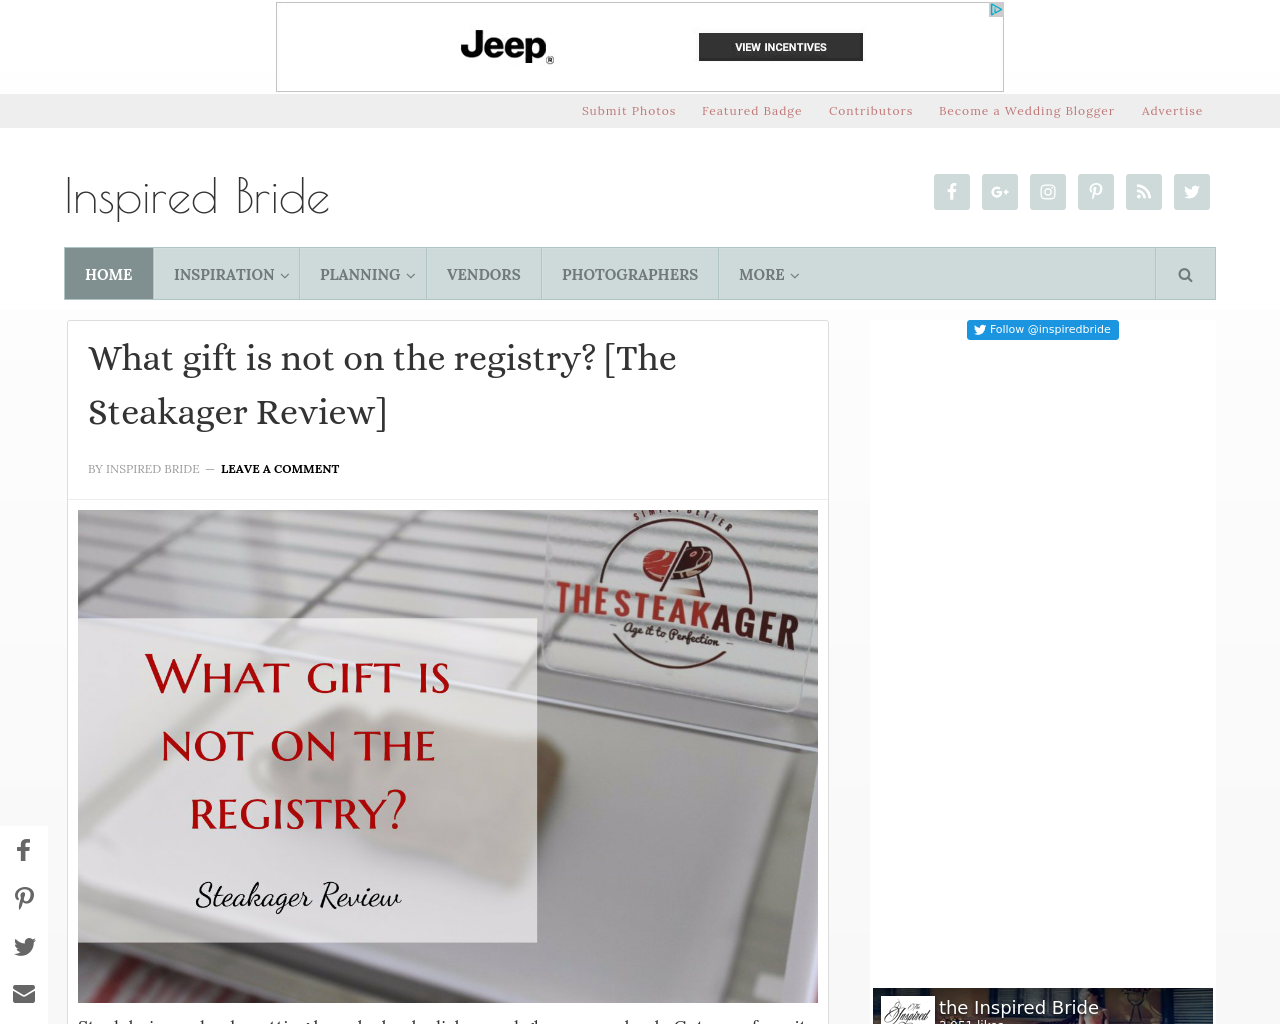 Inspired-Bride-Advertising-Reviews-Pricing